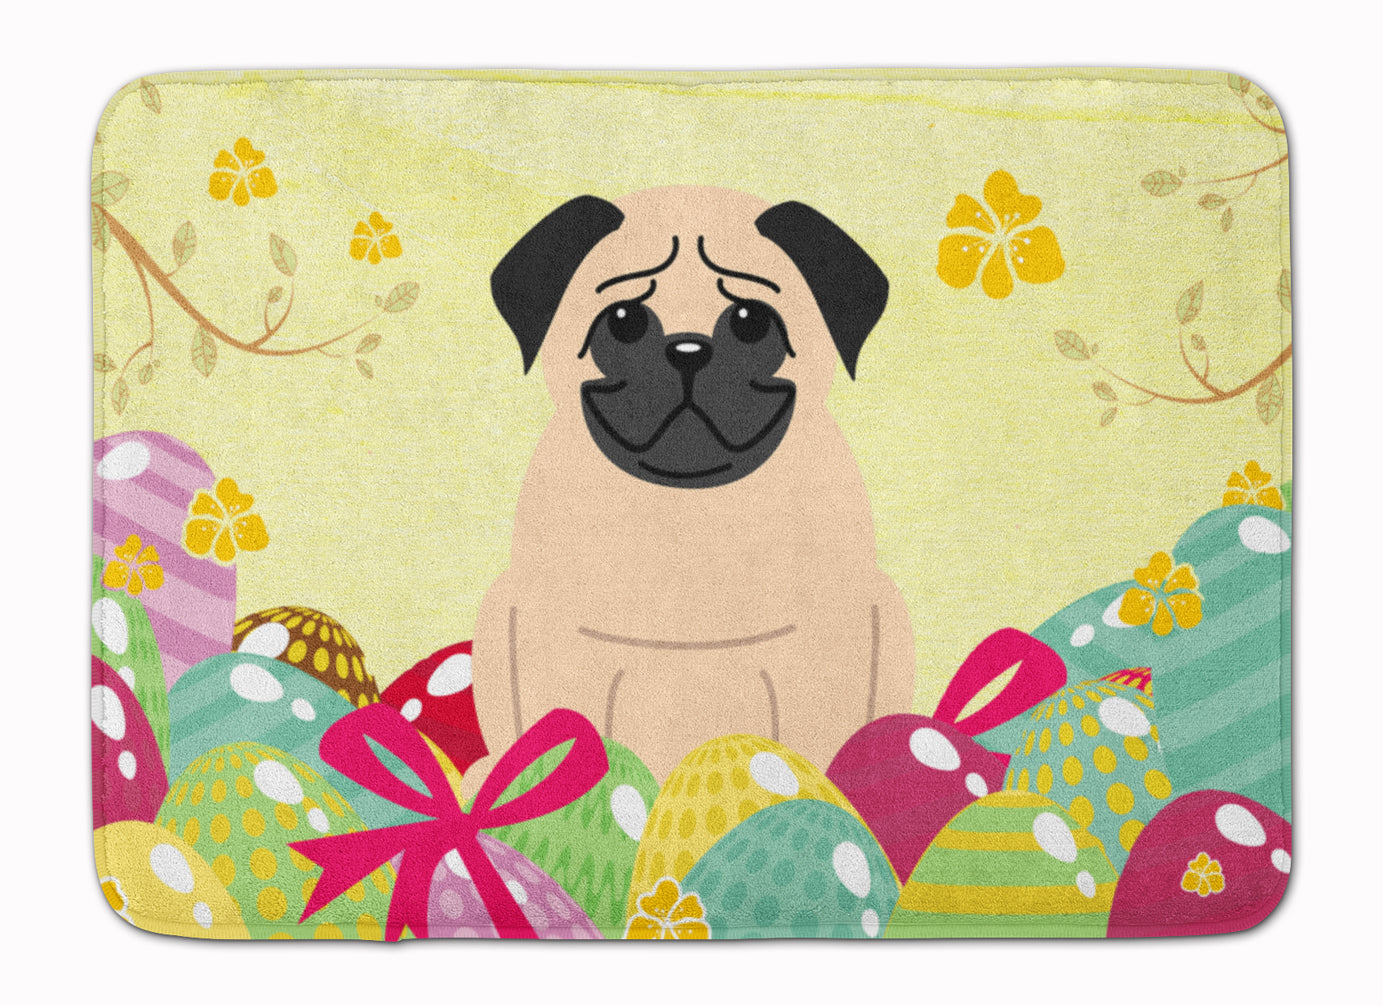 Easter Eggs Pug Fawn Machine Washable Memory Foam Mat BB6008RUG by Caroline's Treasures